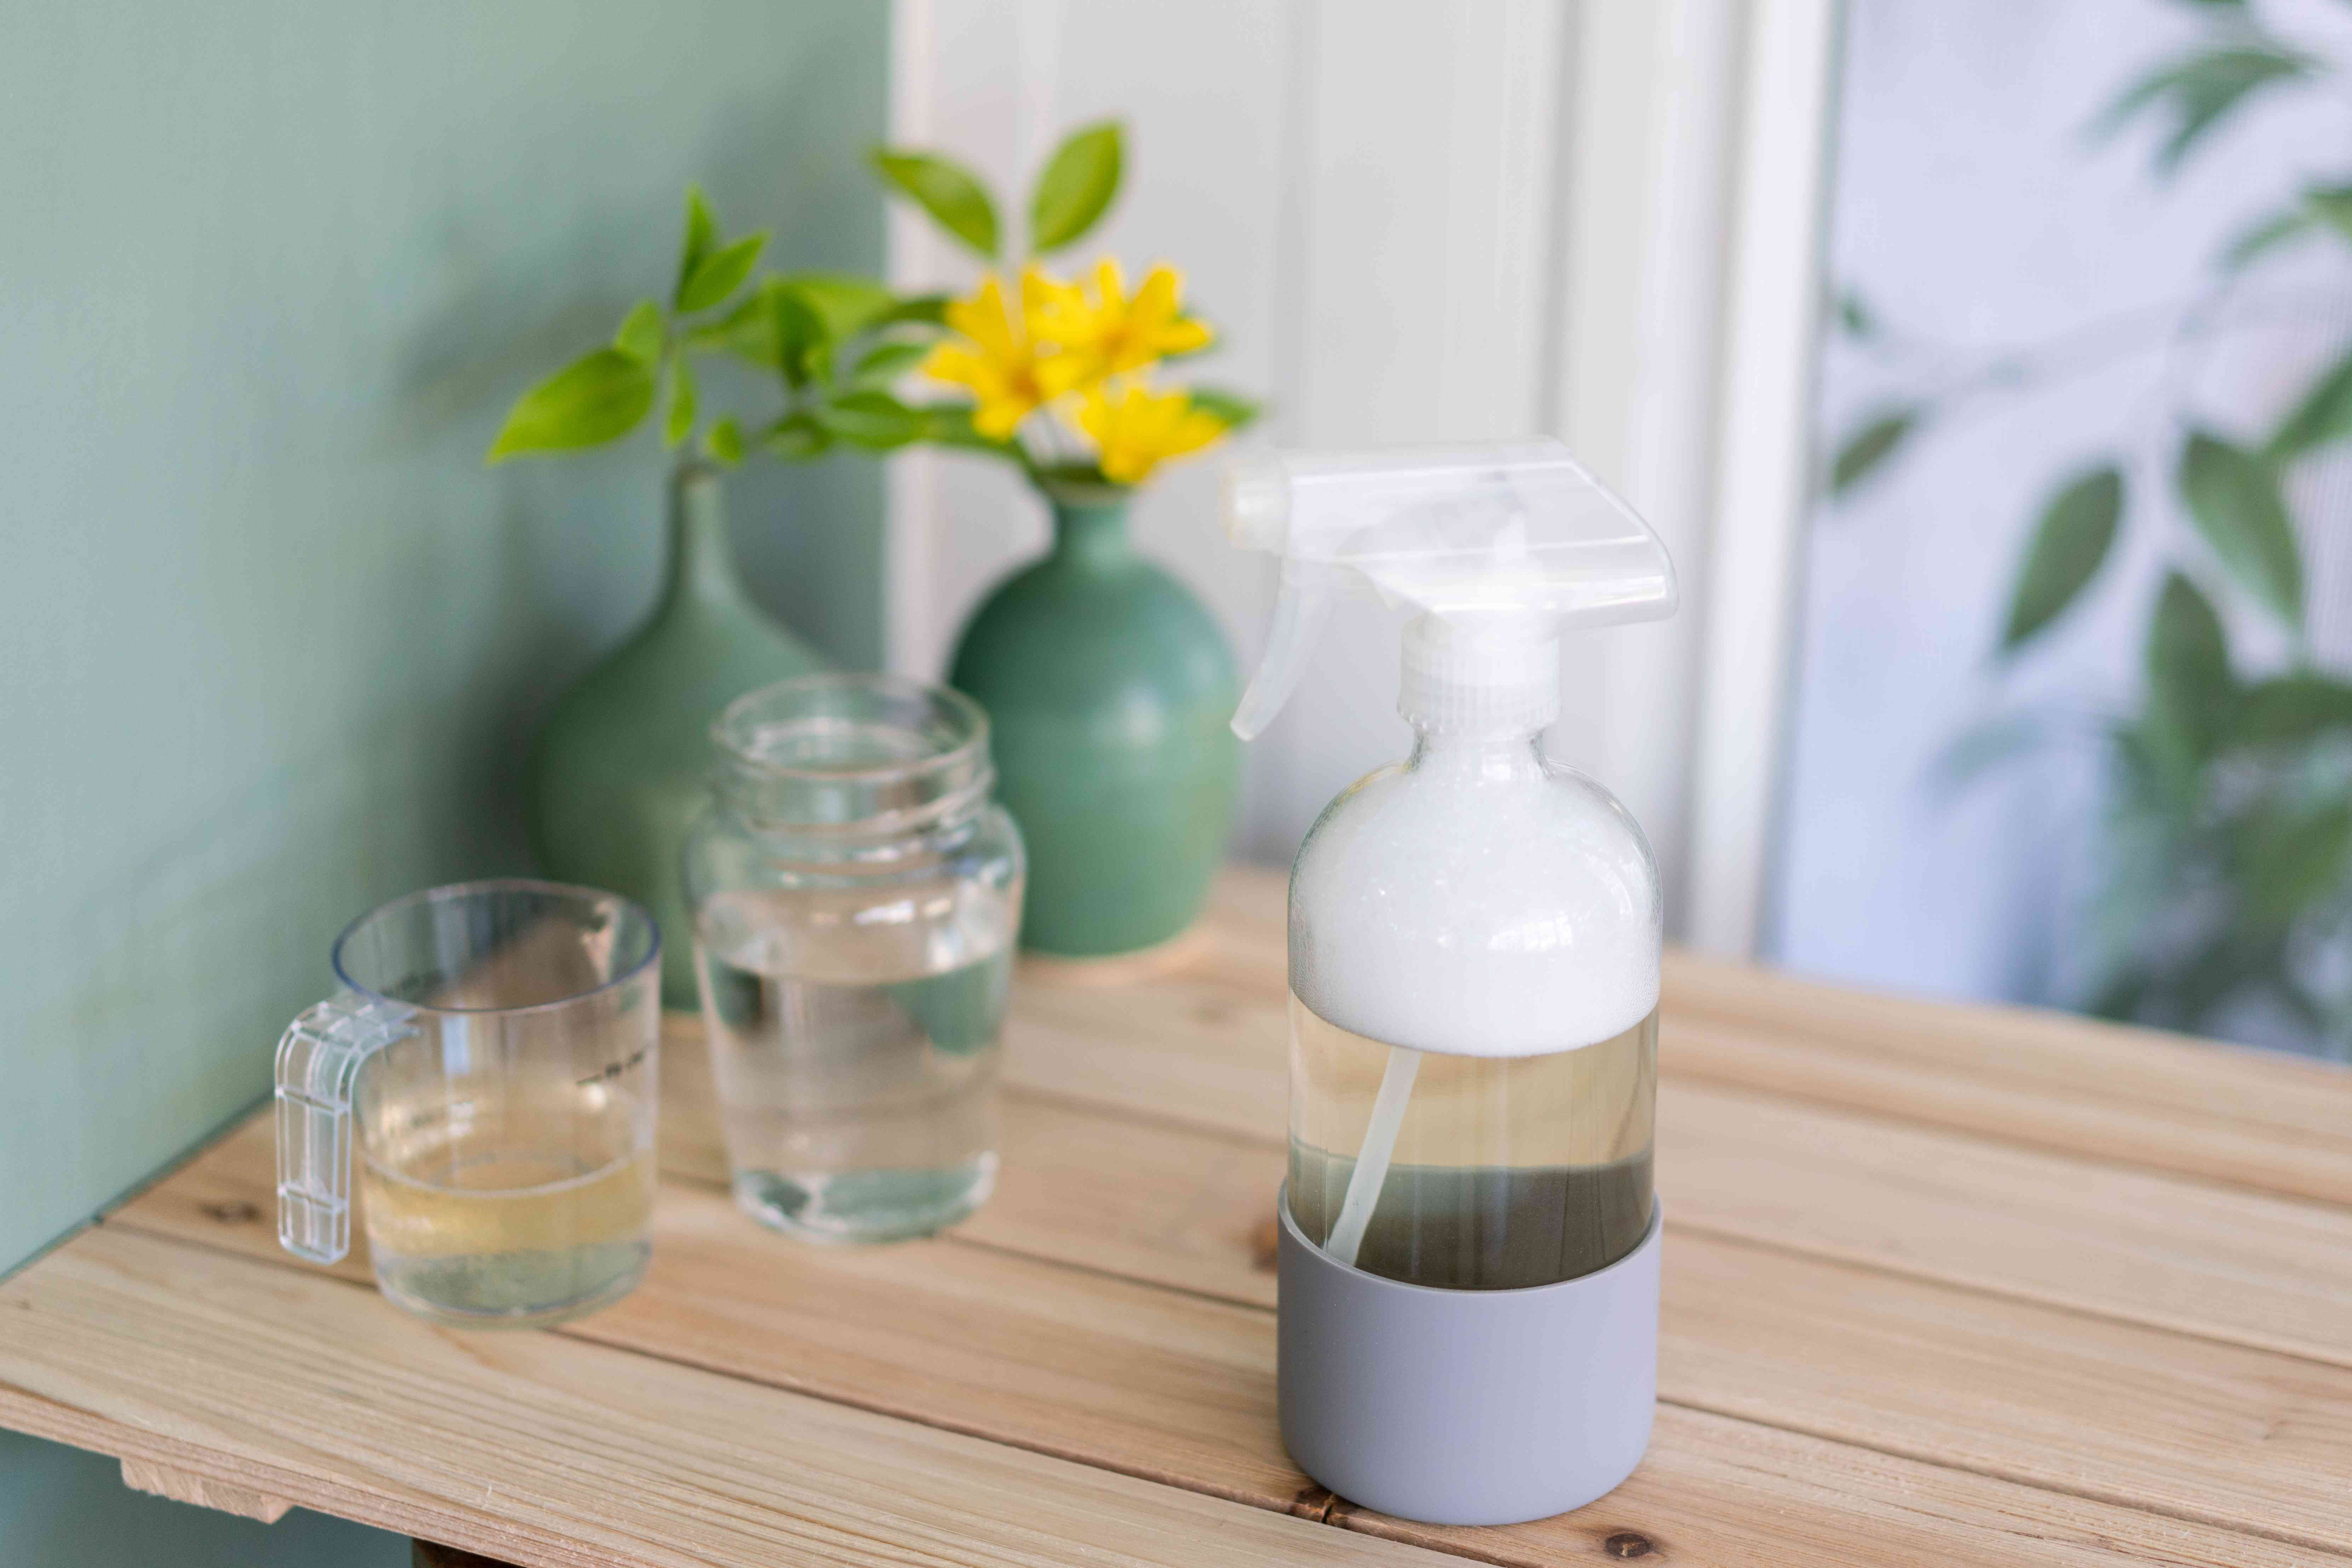 making a dish soap solution